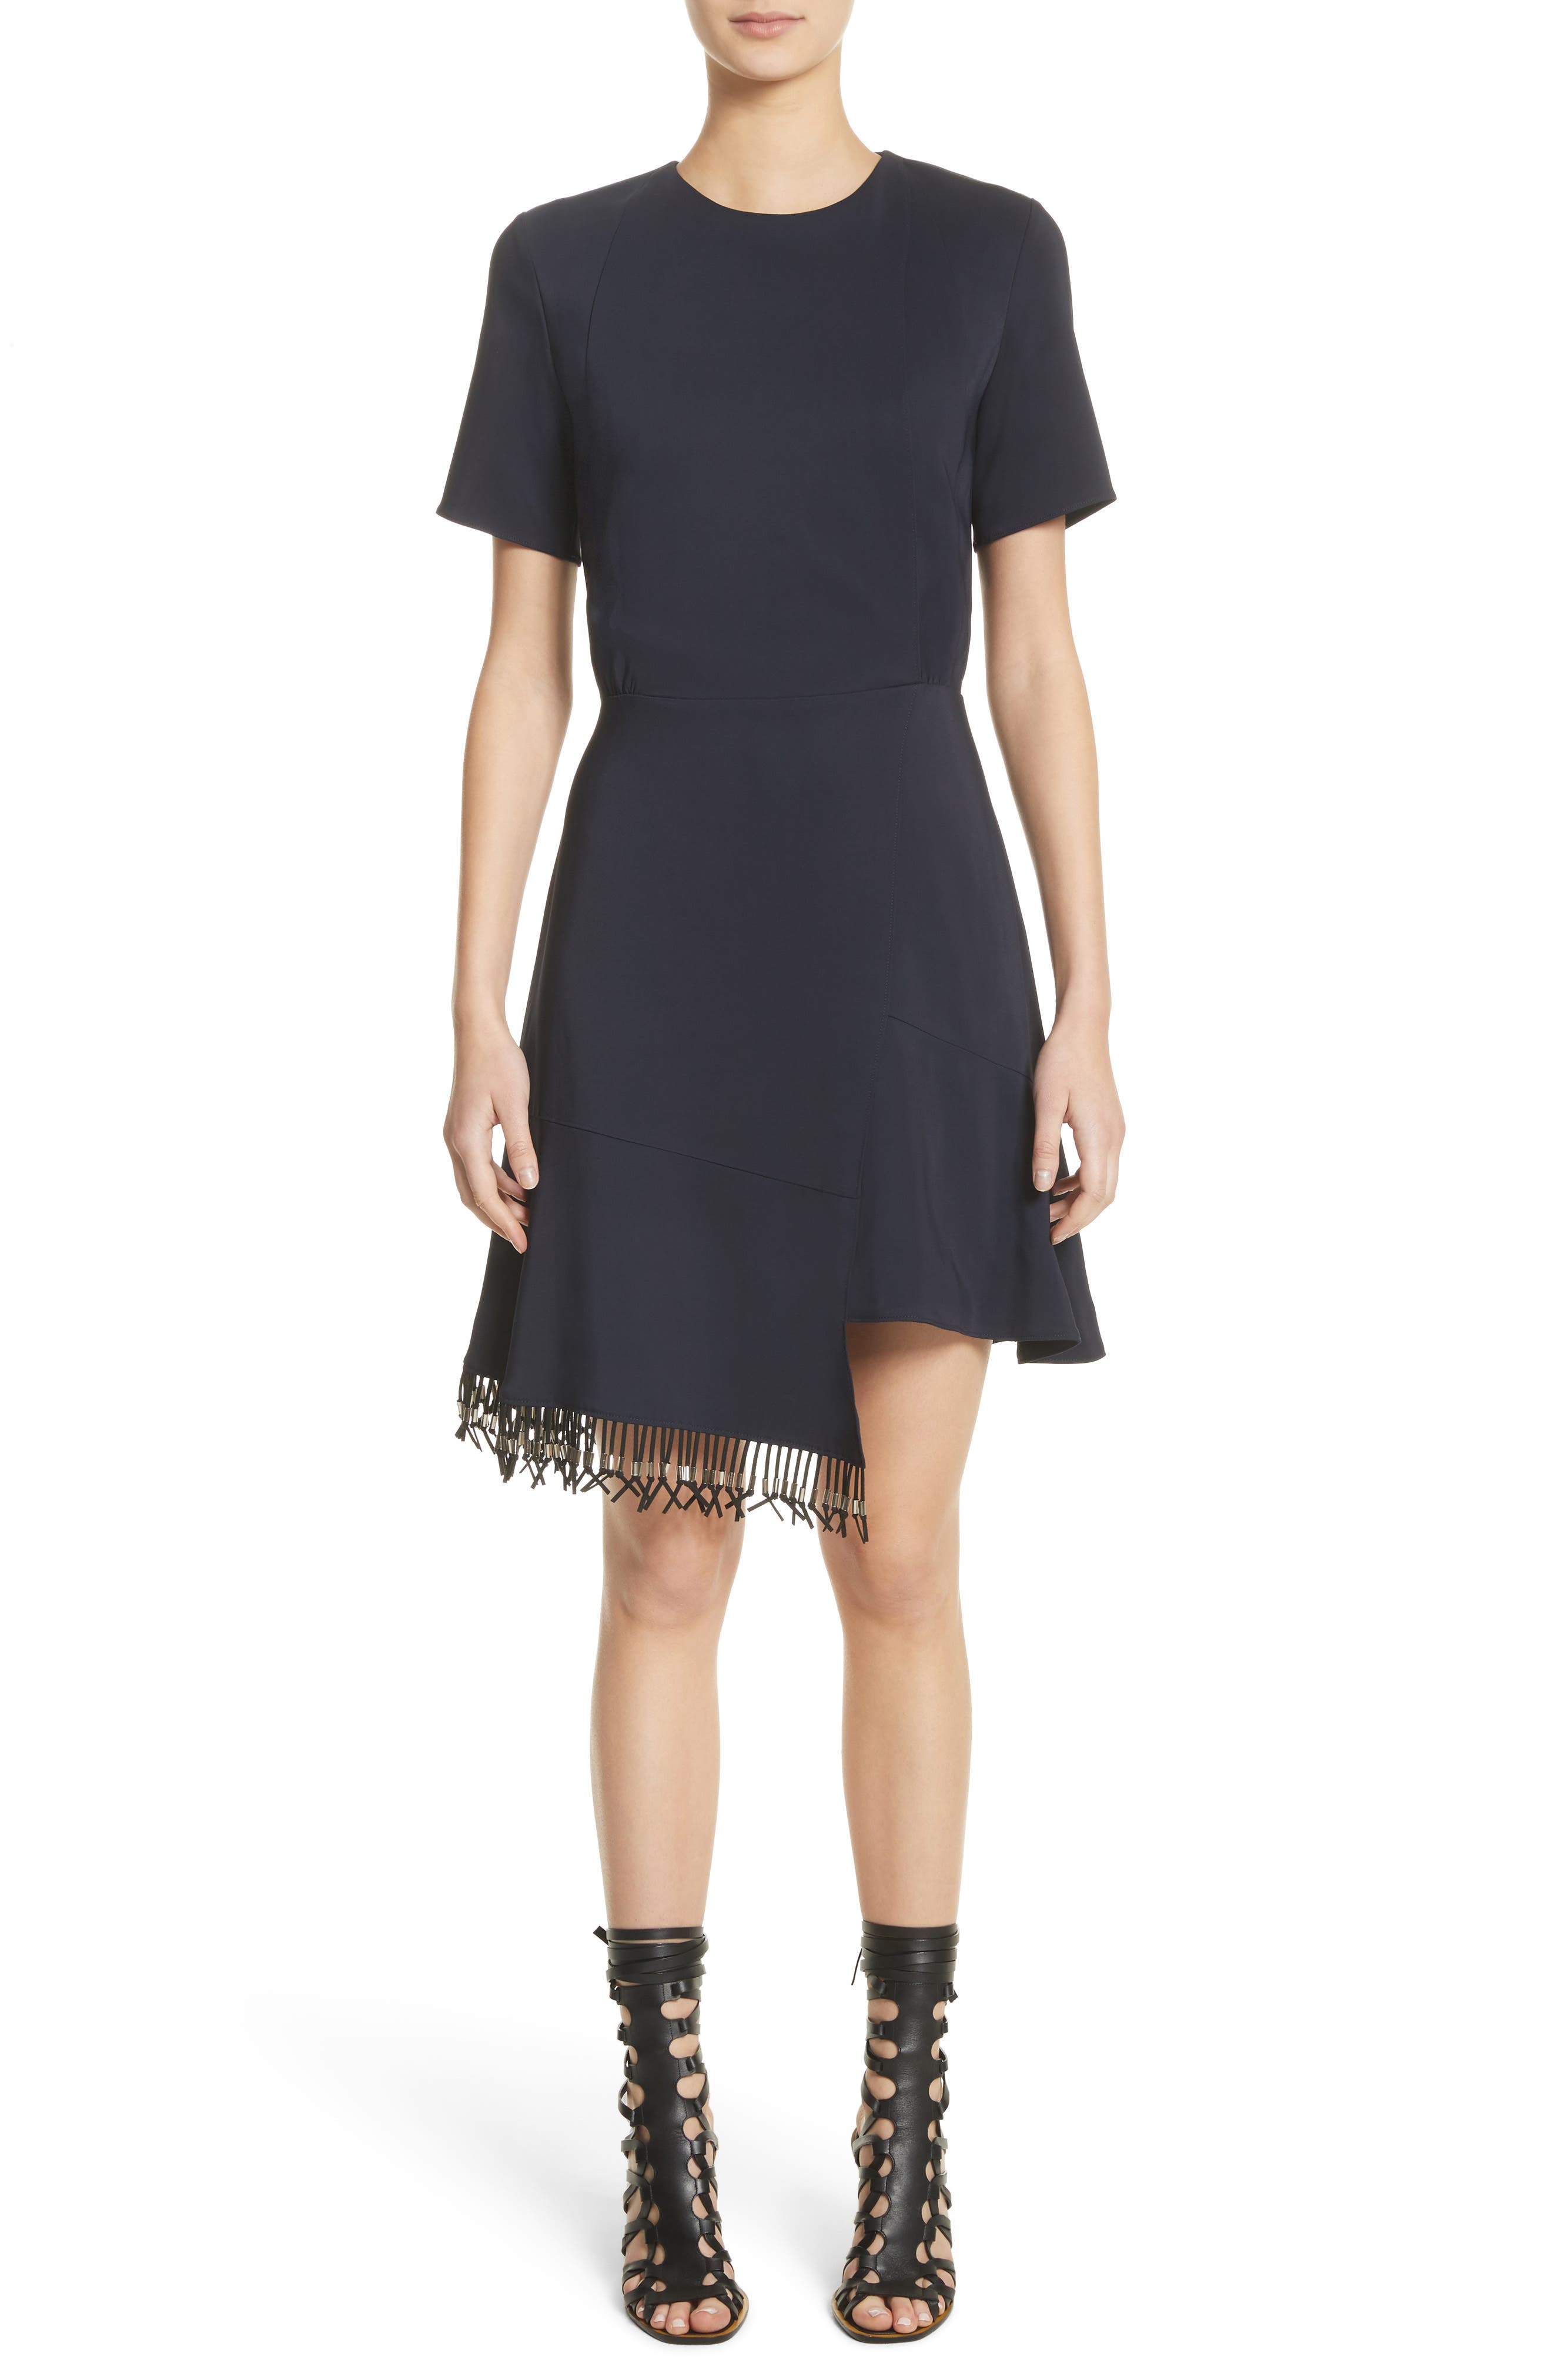 Altuzarra Asymmetrical Fringe Hem Dress